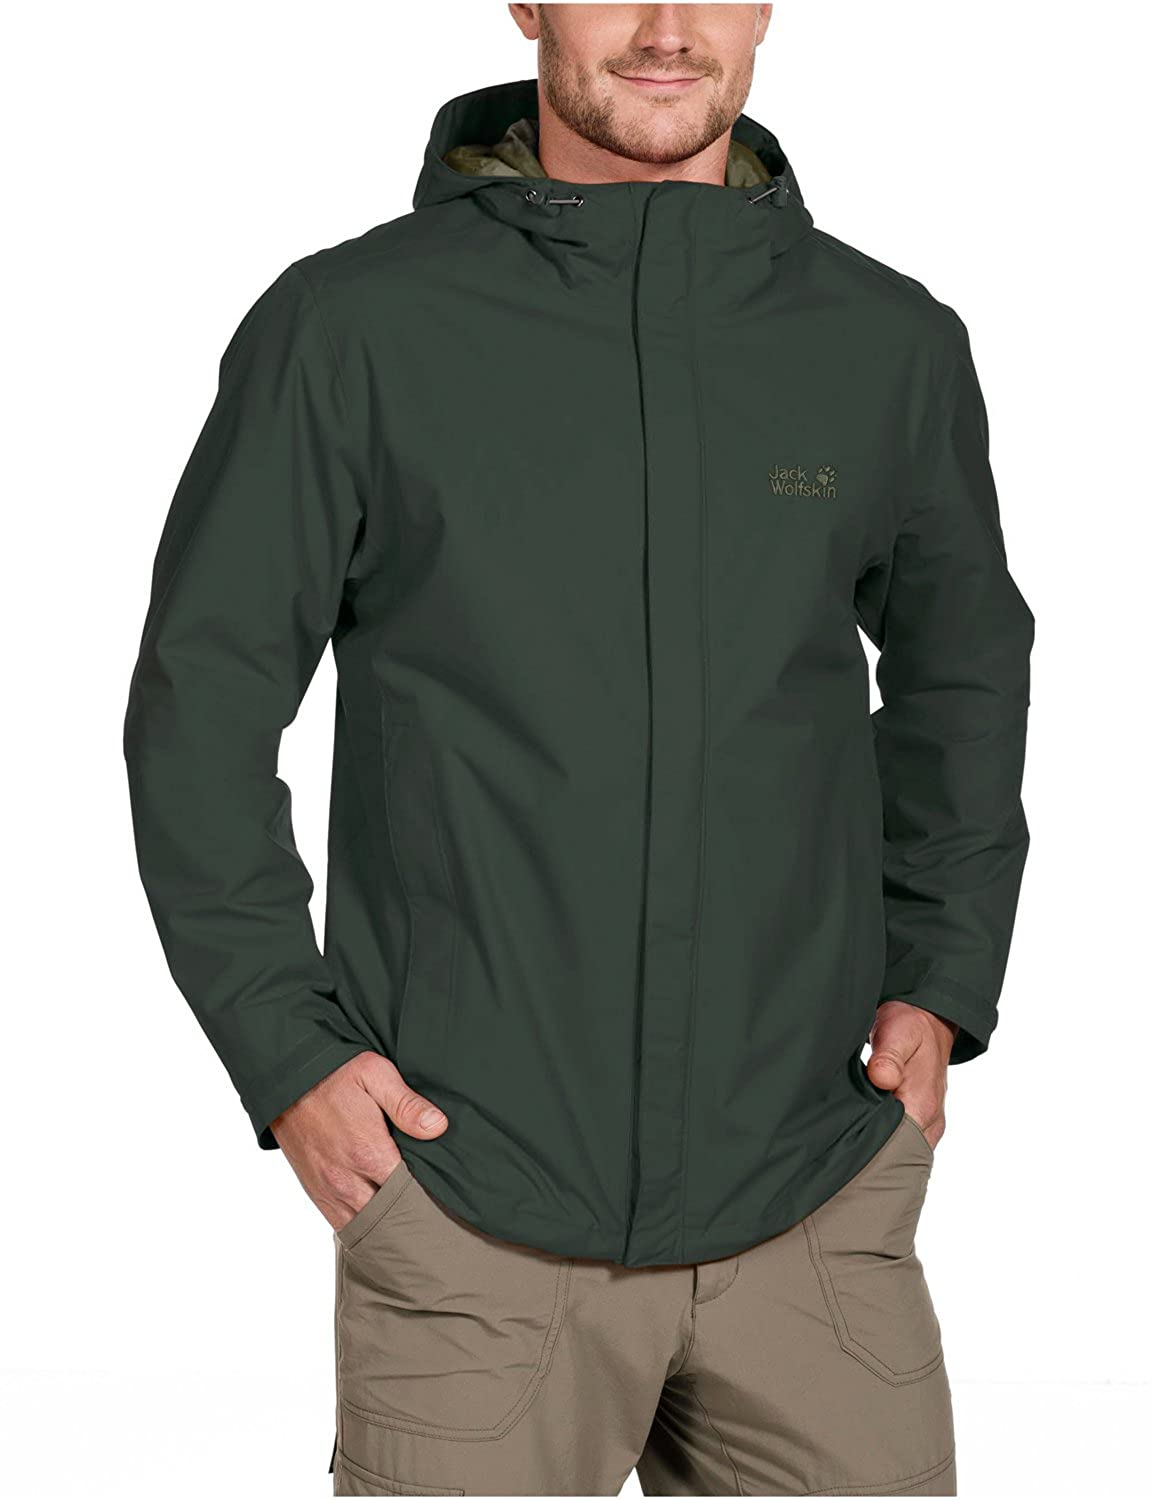 Jack Wolfskin Laconic Texapore JKT Men's Jacket for protecting you against the elements